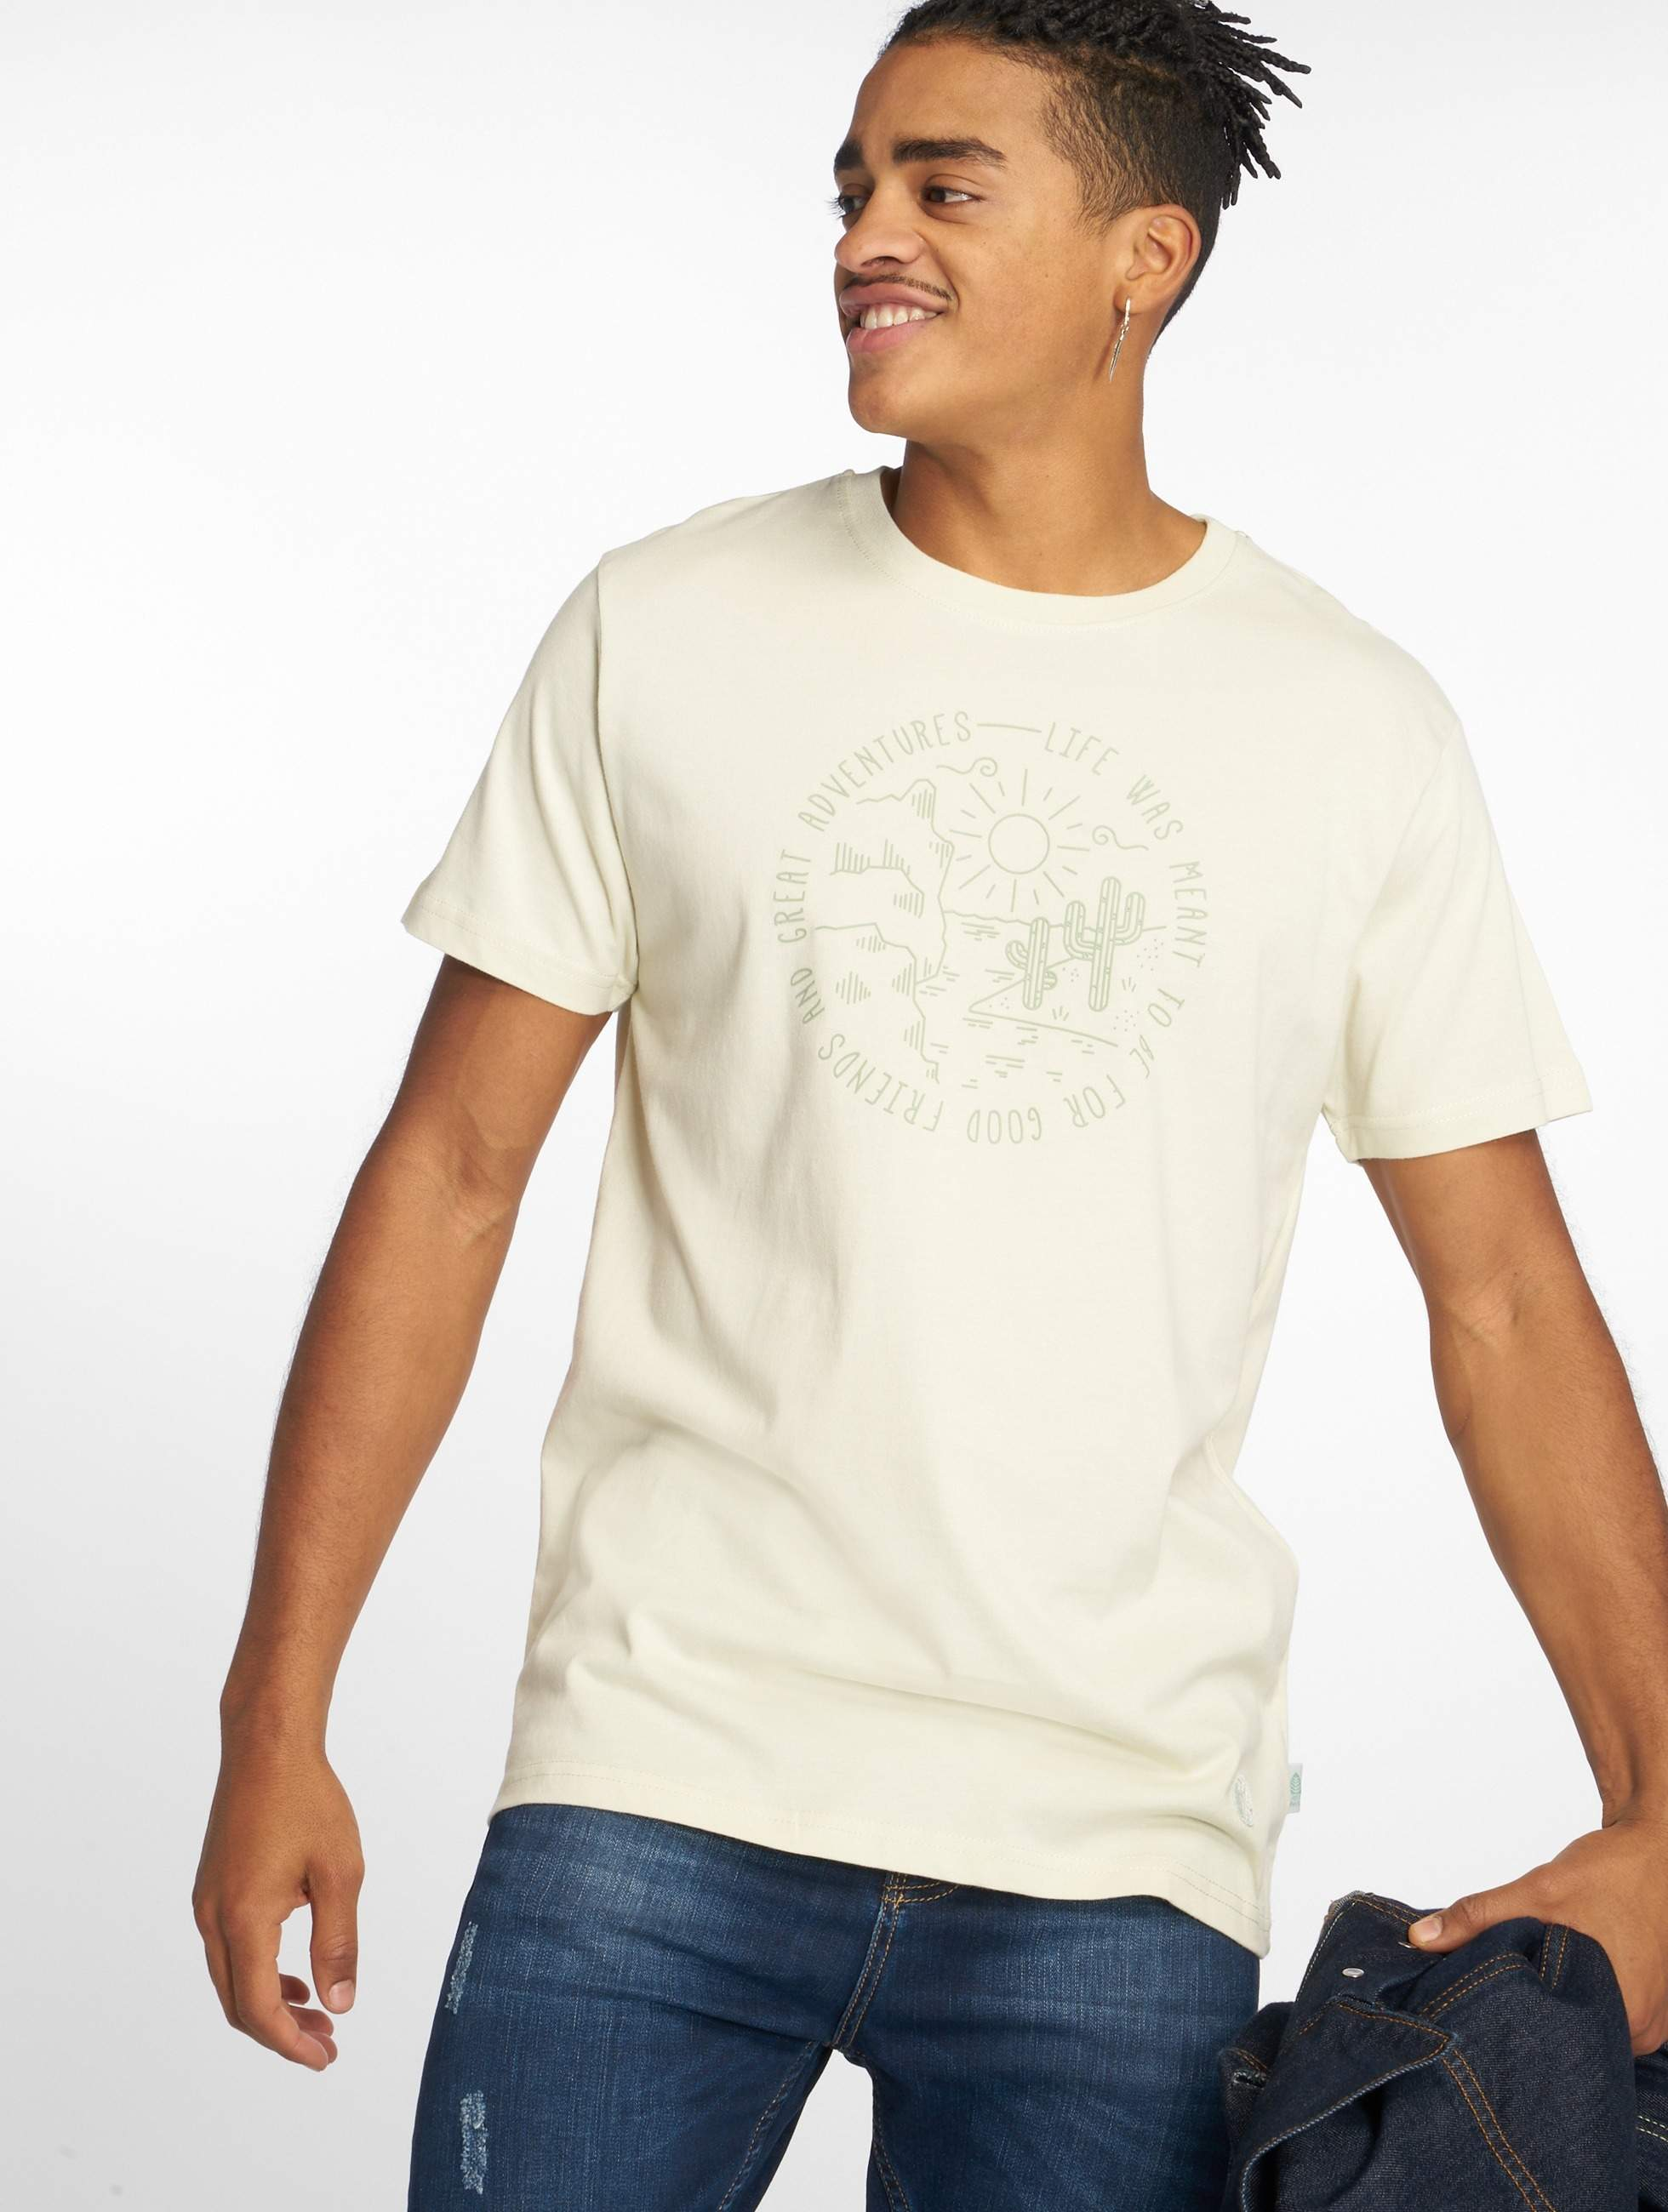 Just Rhyse / T-Shirt Sant Lucia in white 3XL